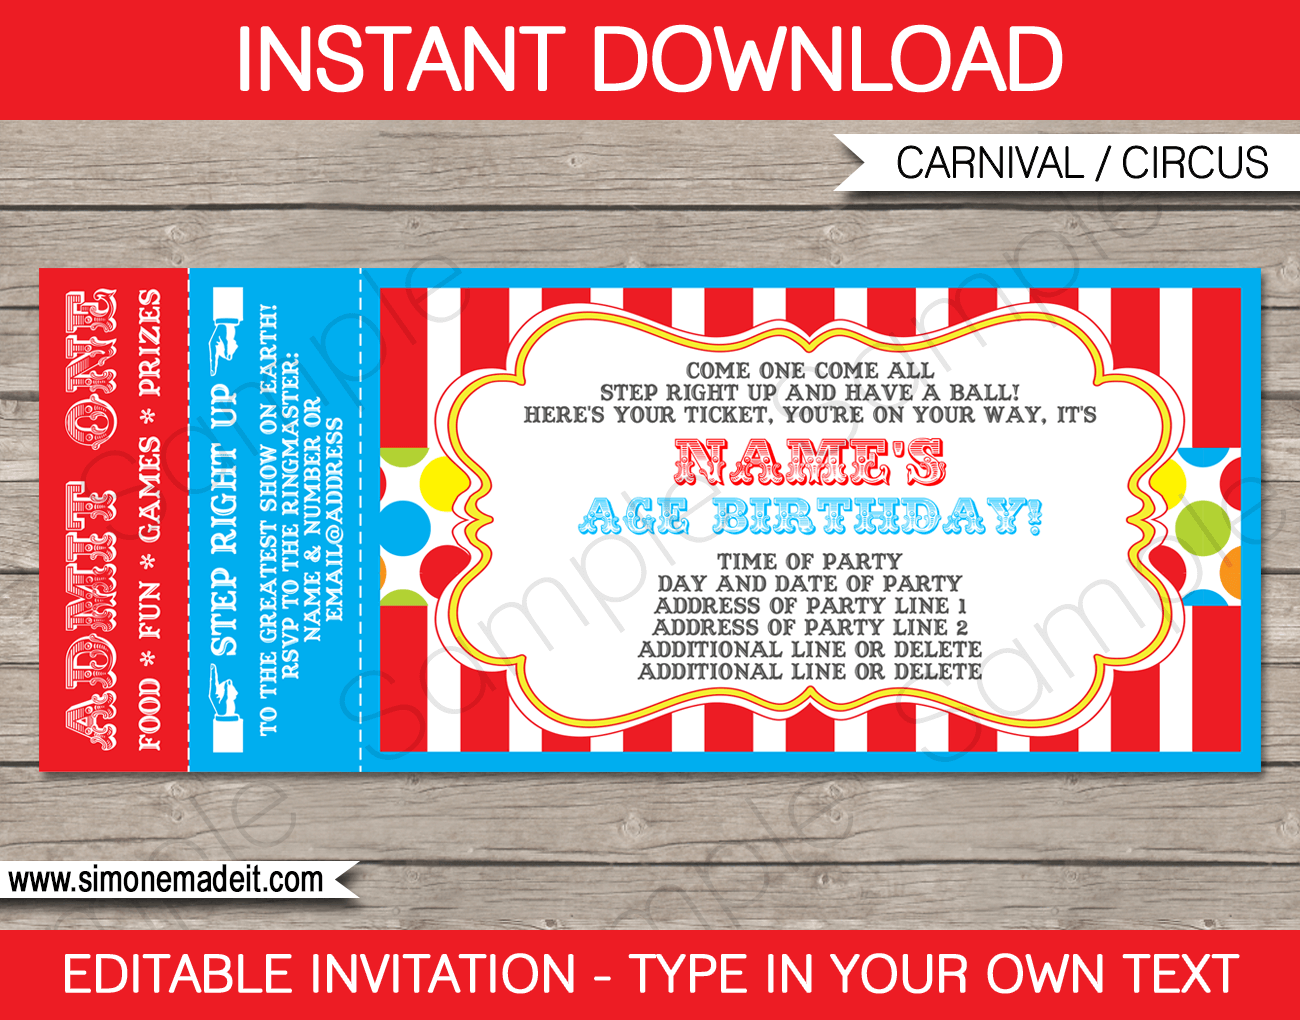 Carnival Ticket Invitation template – colorful 1 | Carnival ...